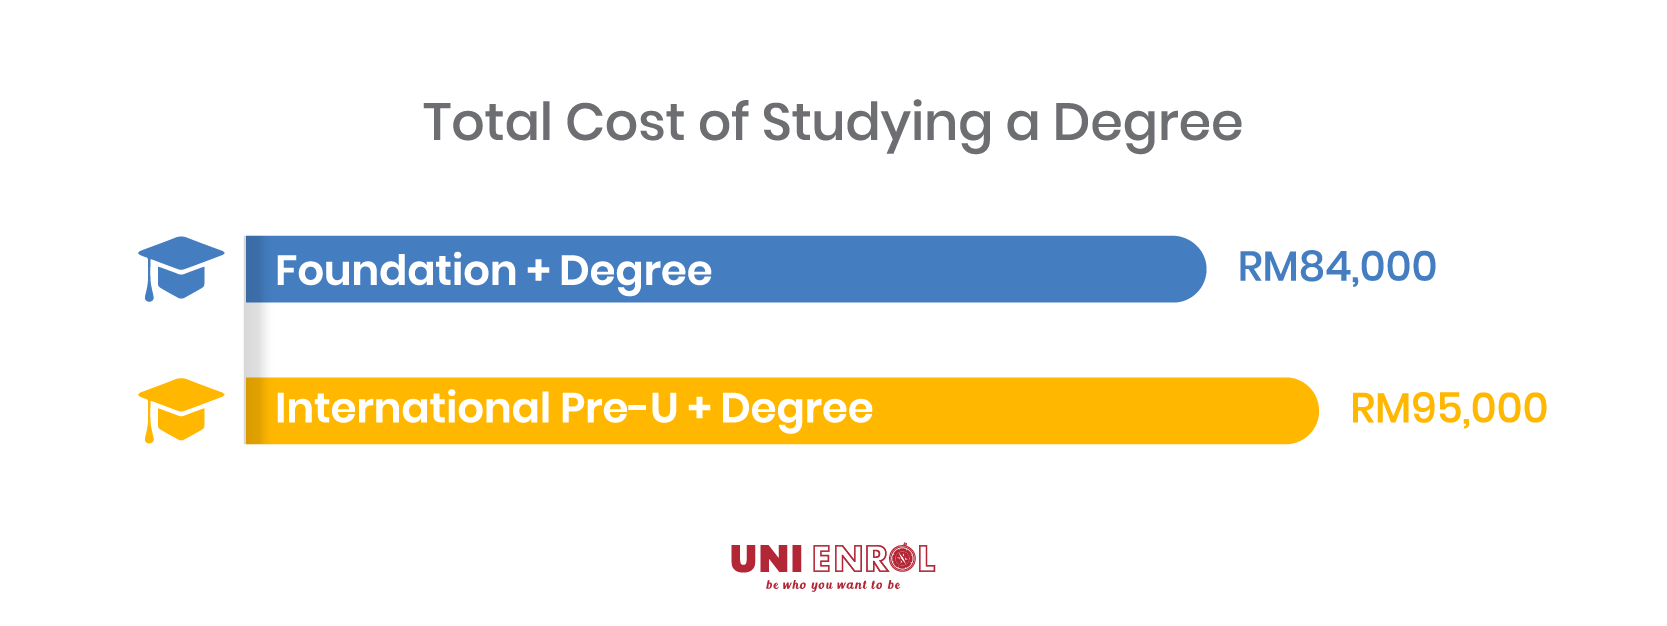 Contact our Uni Enrol counsellors to find a degree course that fits your budget.